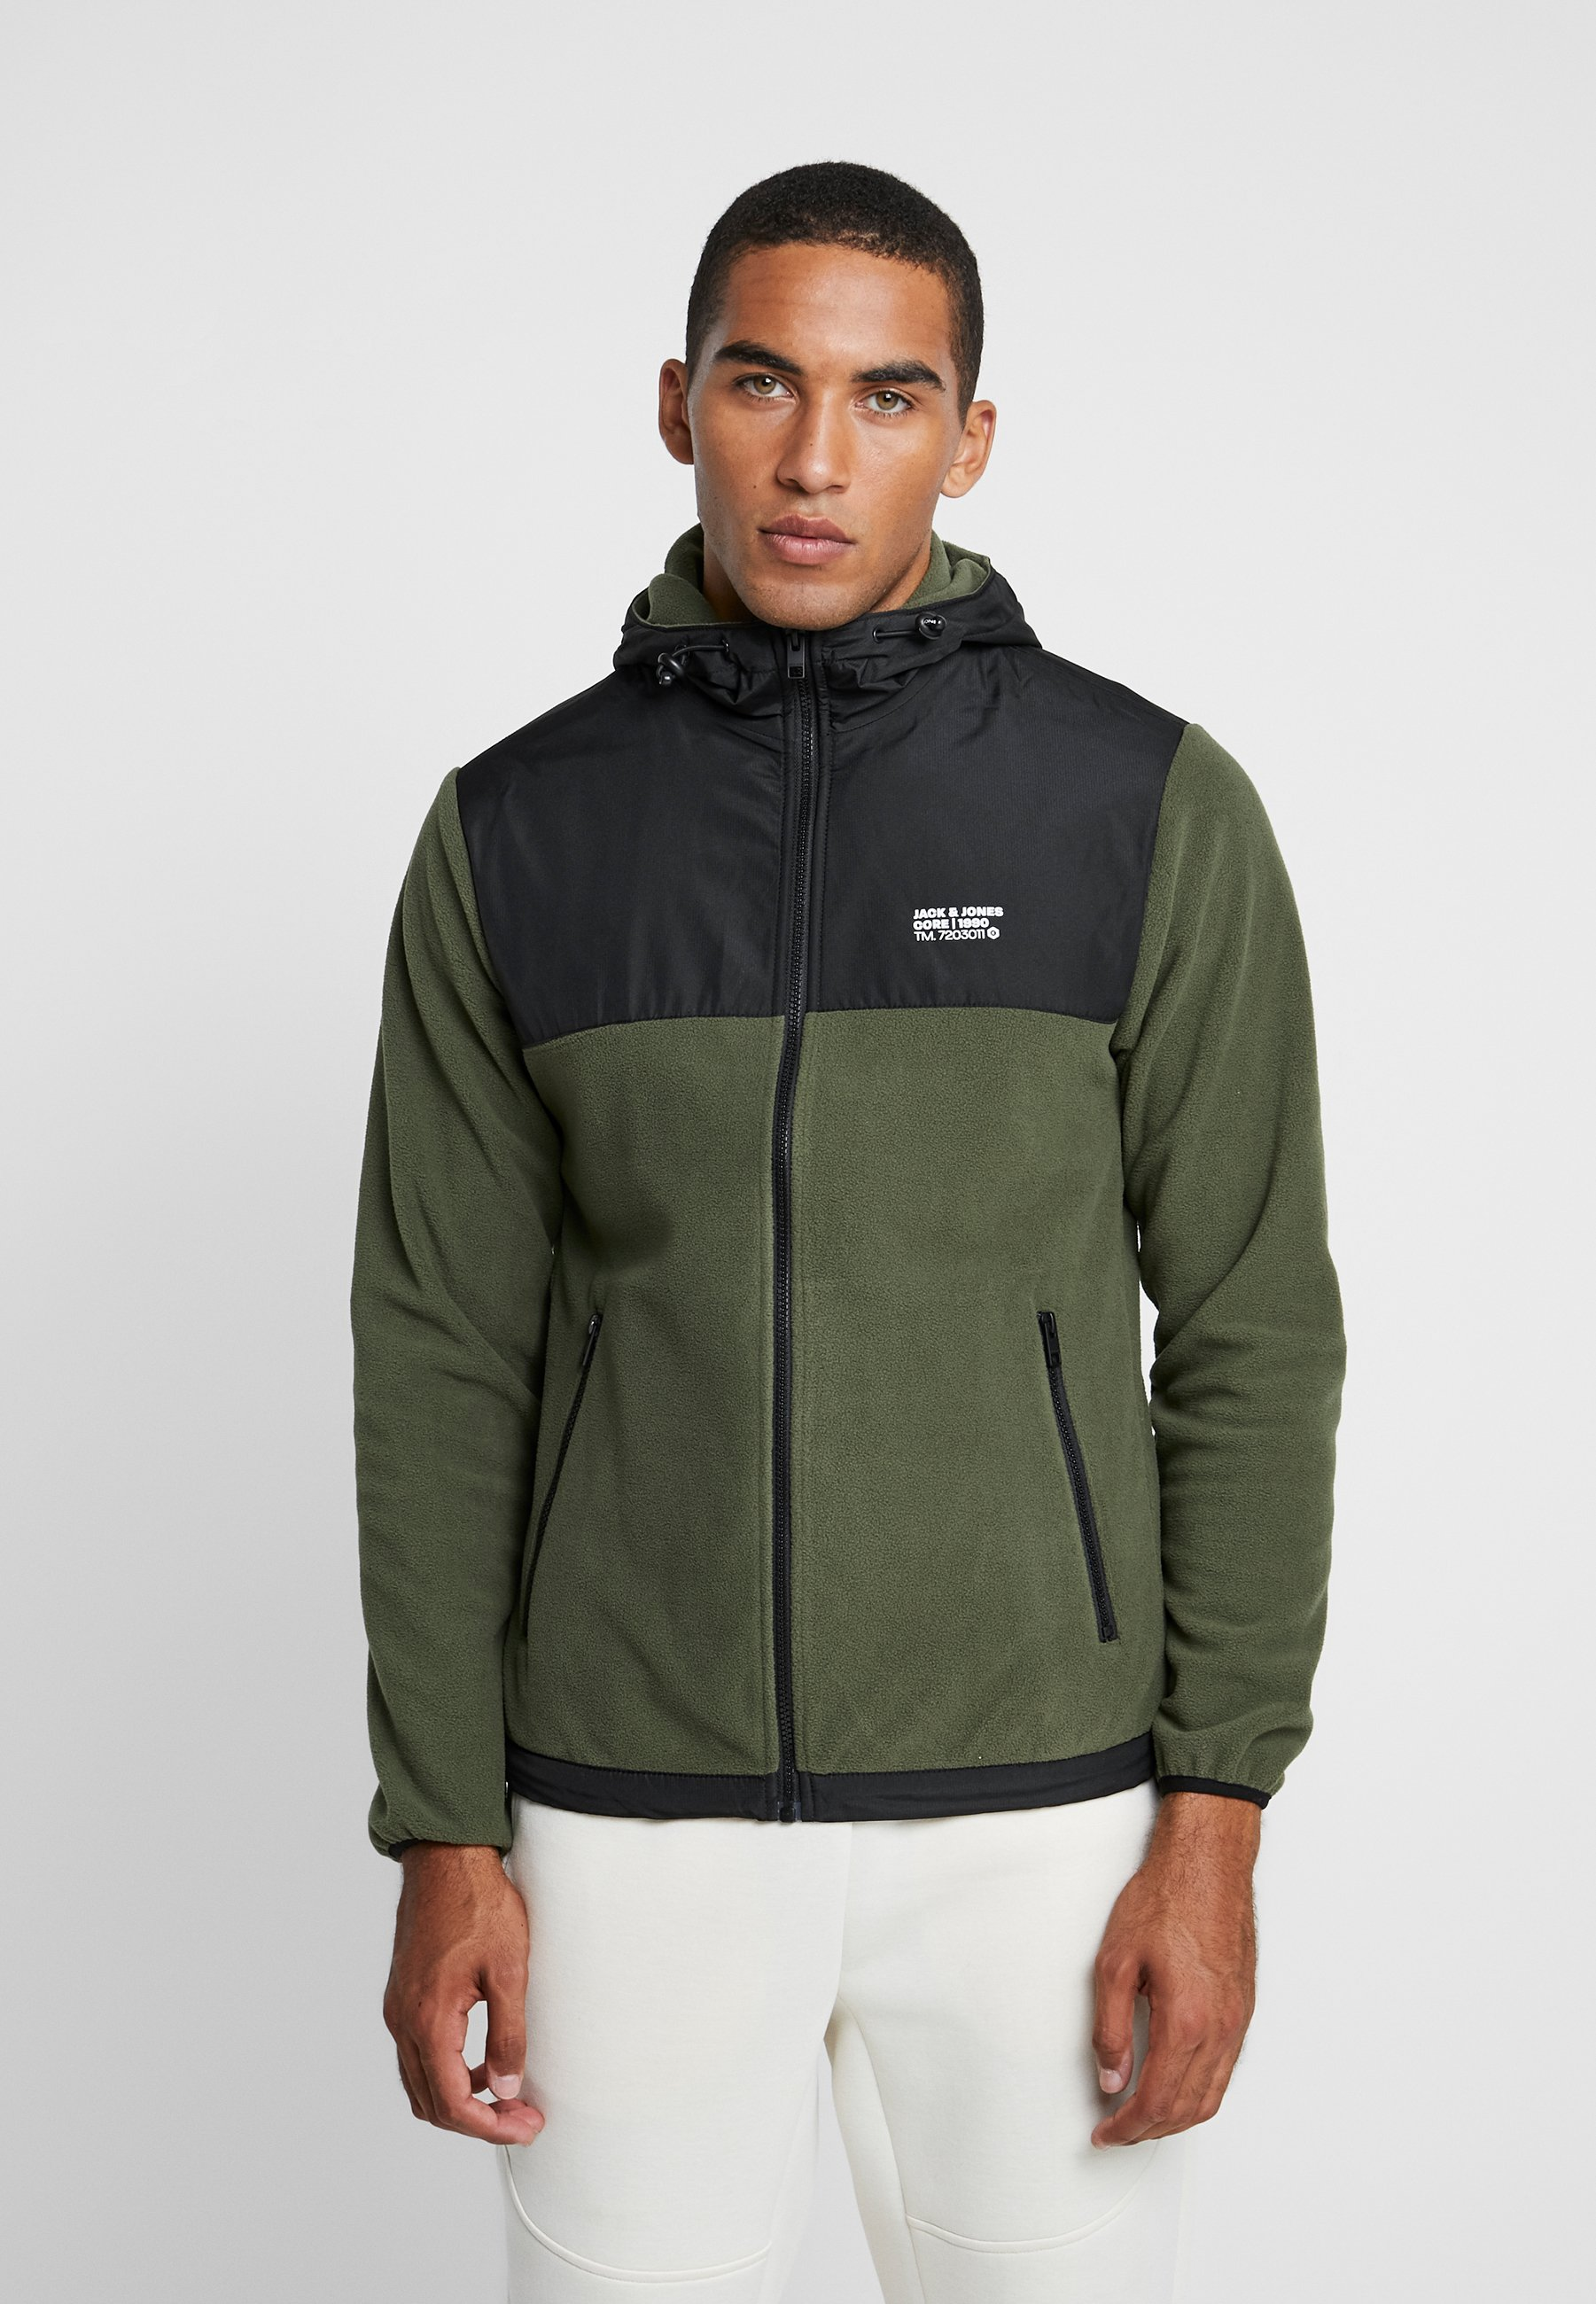 Jones Forest Night JcokingVeste Polaire Jackamp; qzMUSGVp